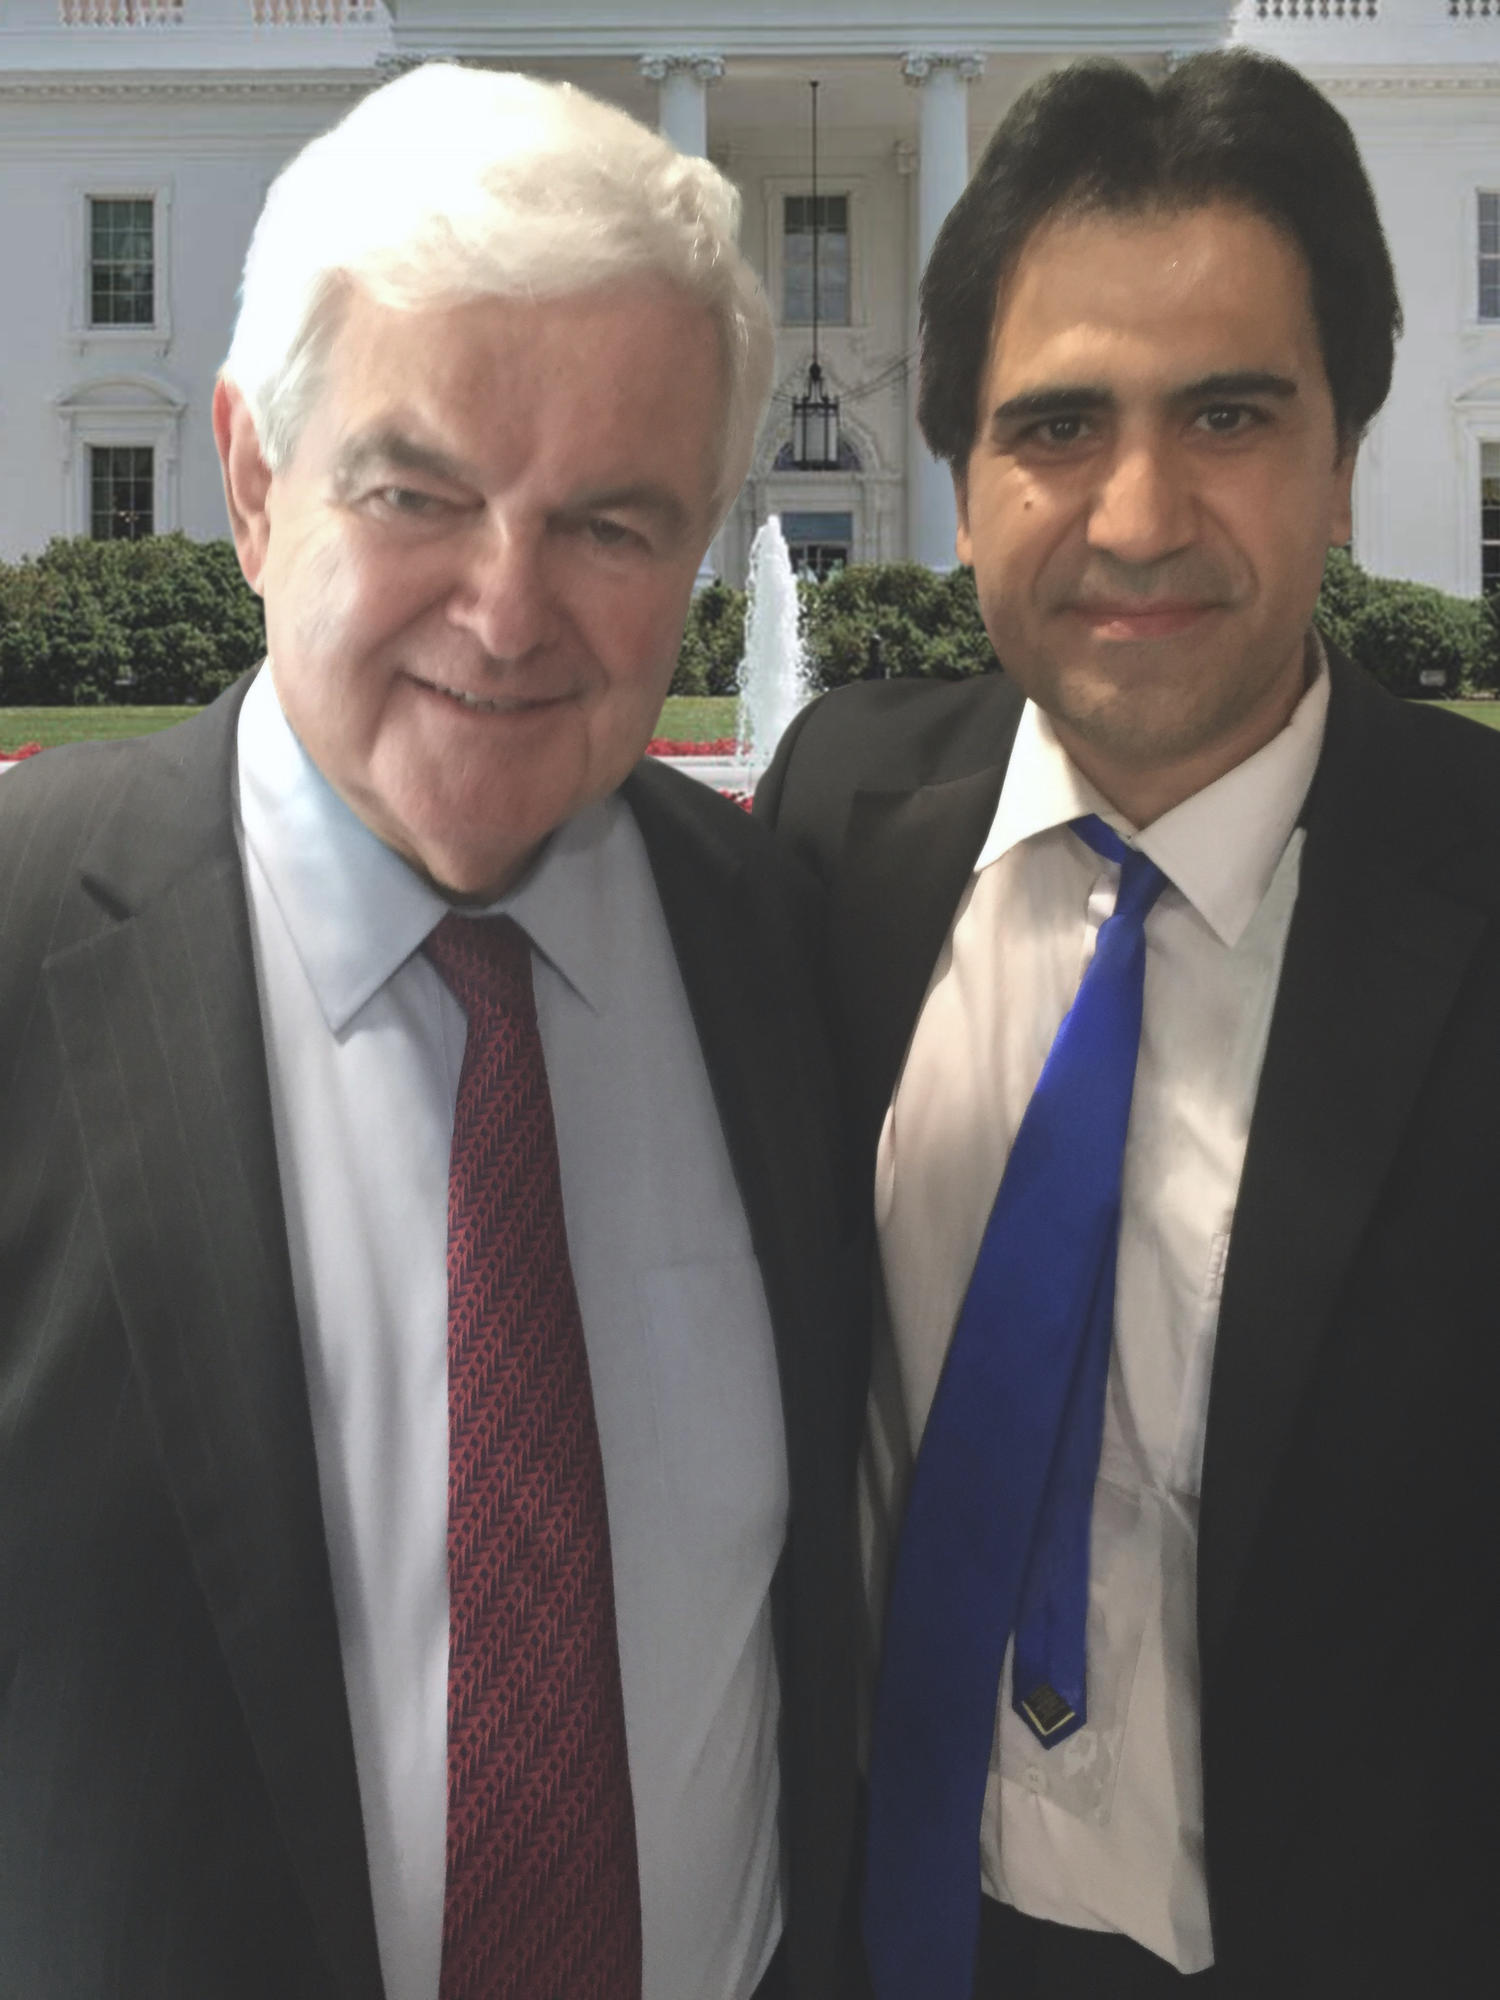 On the US and Middle East policies, Newt Gingrich, 50th Speaker of the United States House of Representatives and former U.S. presidential candidate